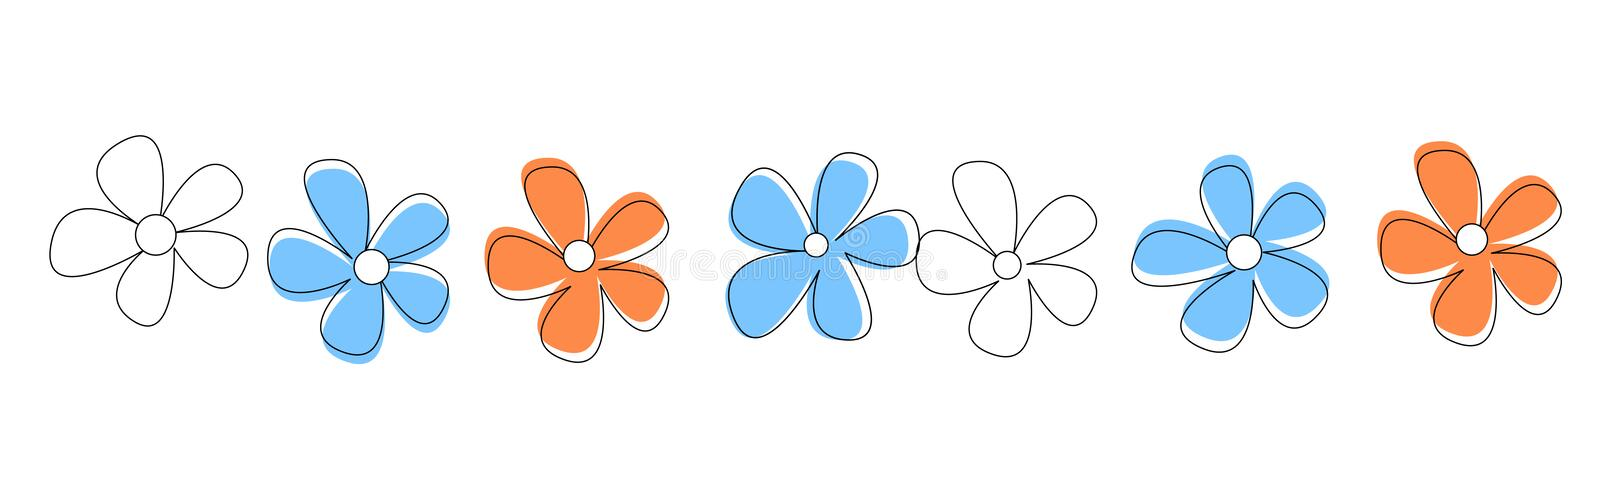 Line Drawing Of Flowers Clipart : Flowers line divider stock vector illustration of daisy